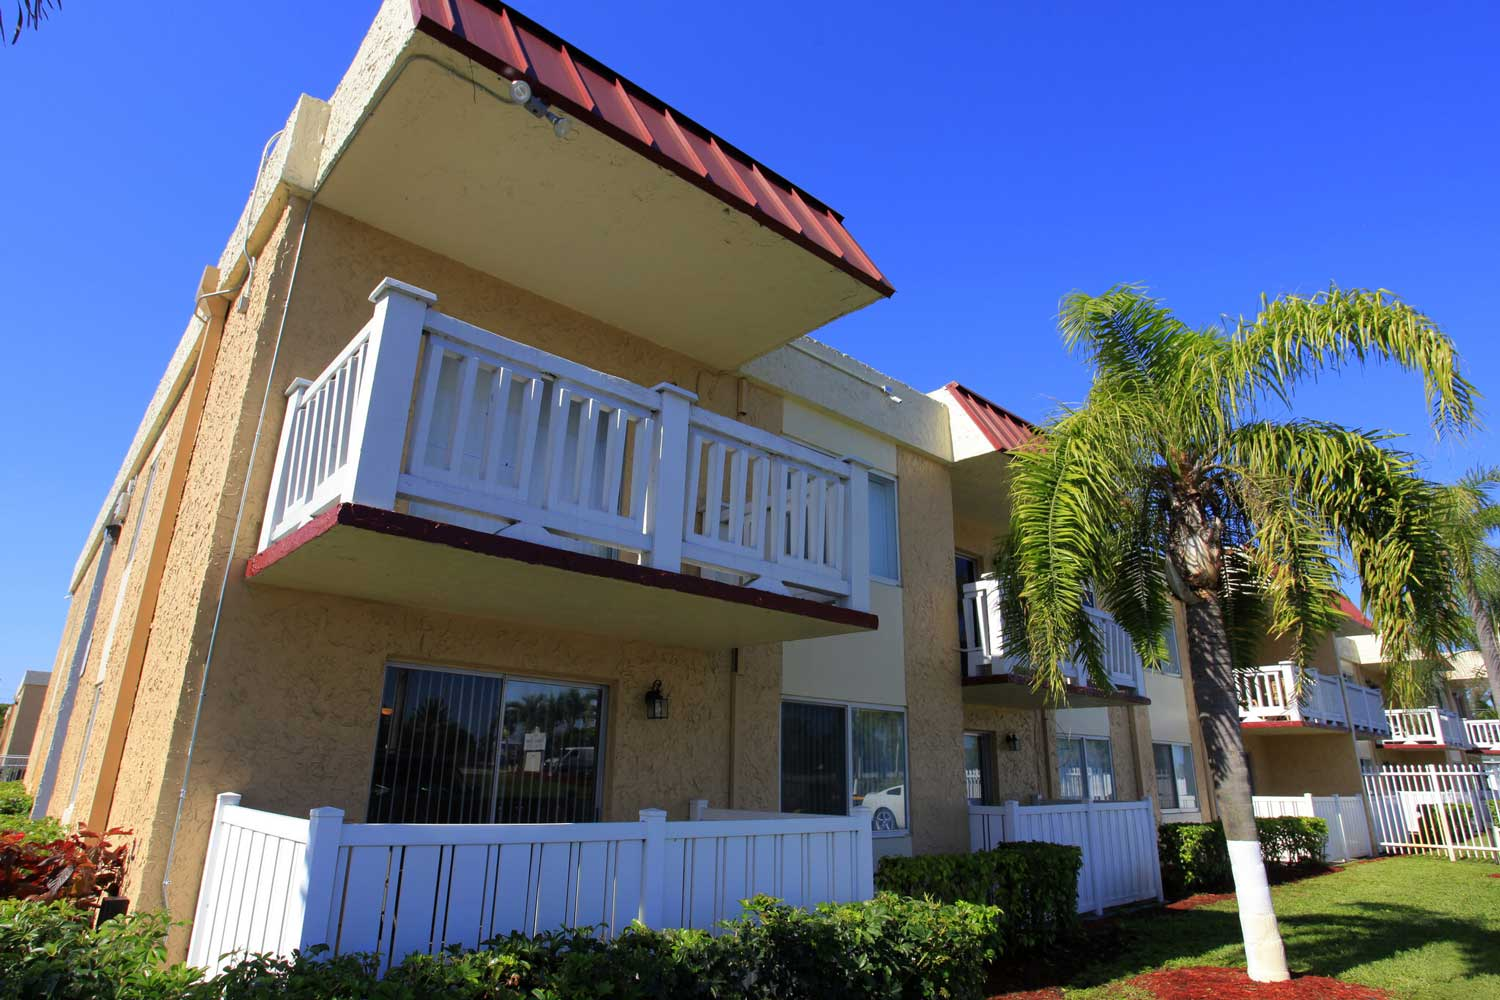 Apartments for Rent at Windsor Forest Apartments in Pompano Beach, FL